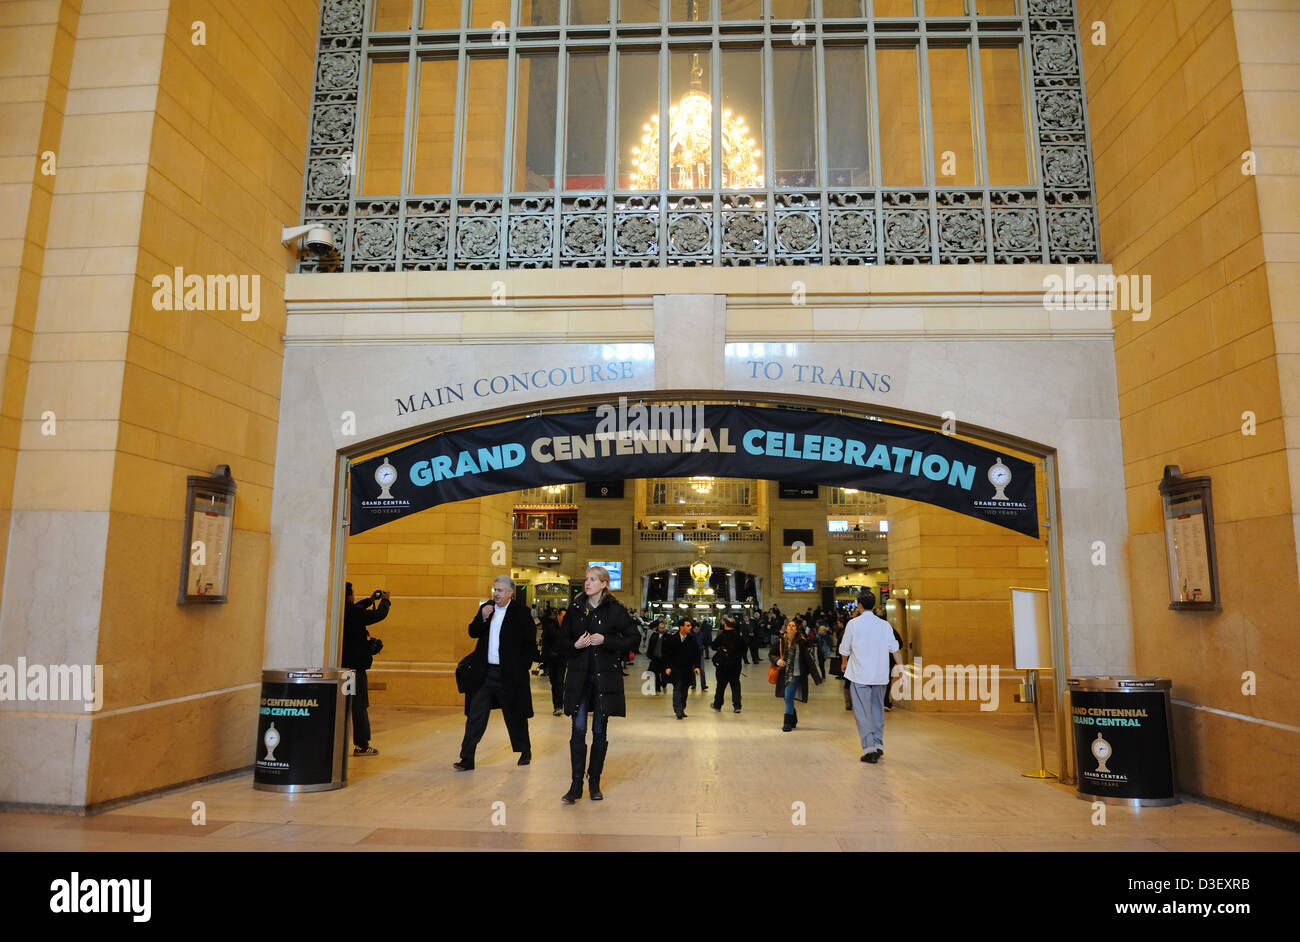 Grand Central Terminal is celebrating its centennial. The landmark train station in midtown Manhattan opened on - Stock Image